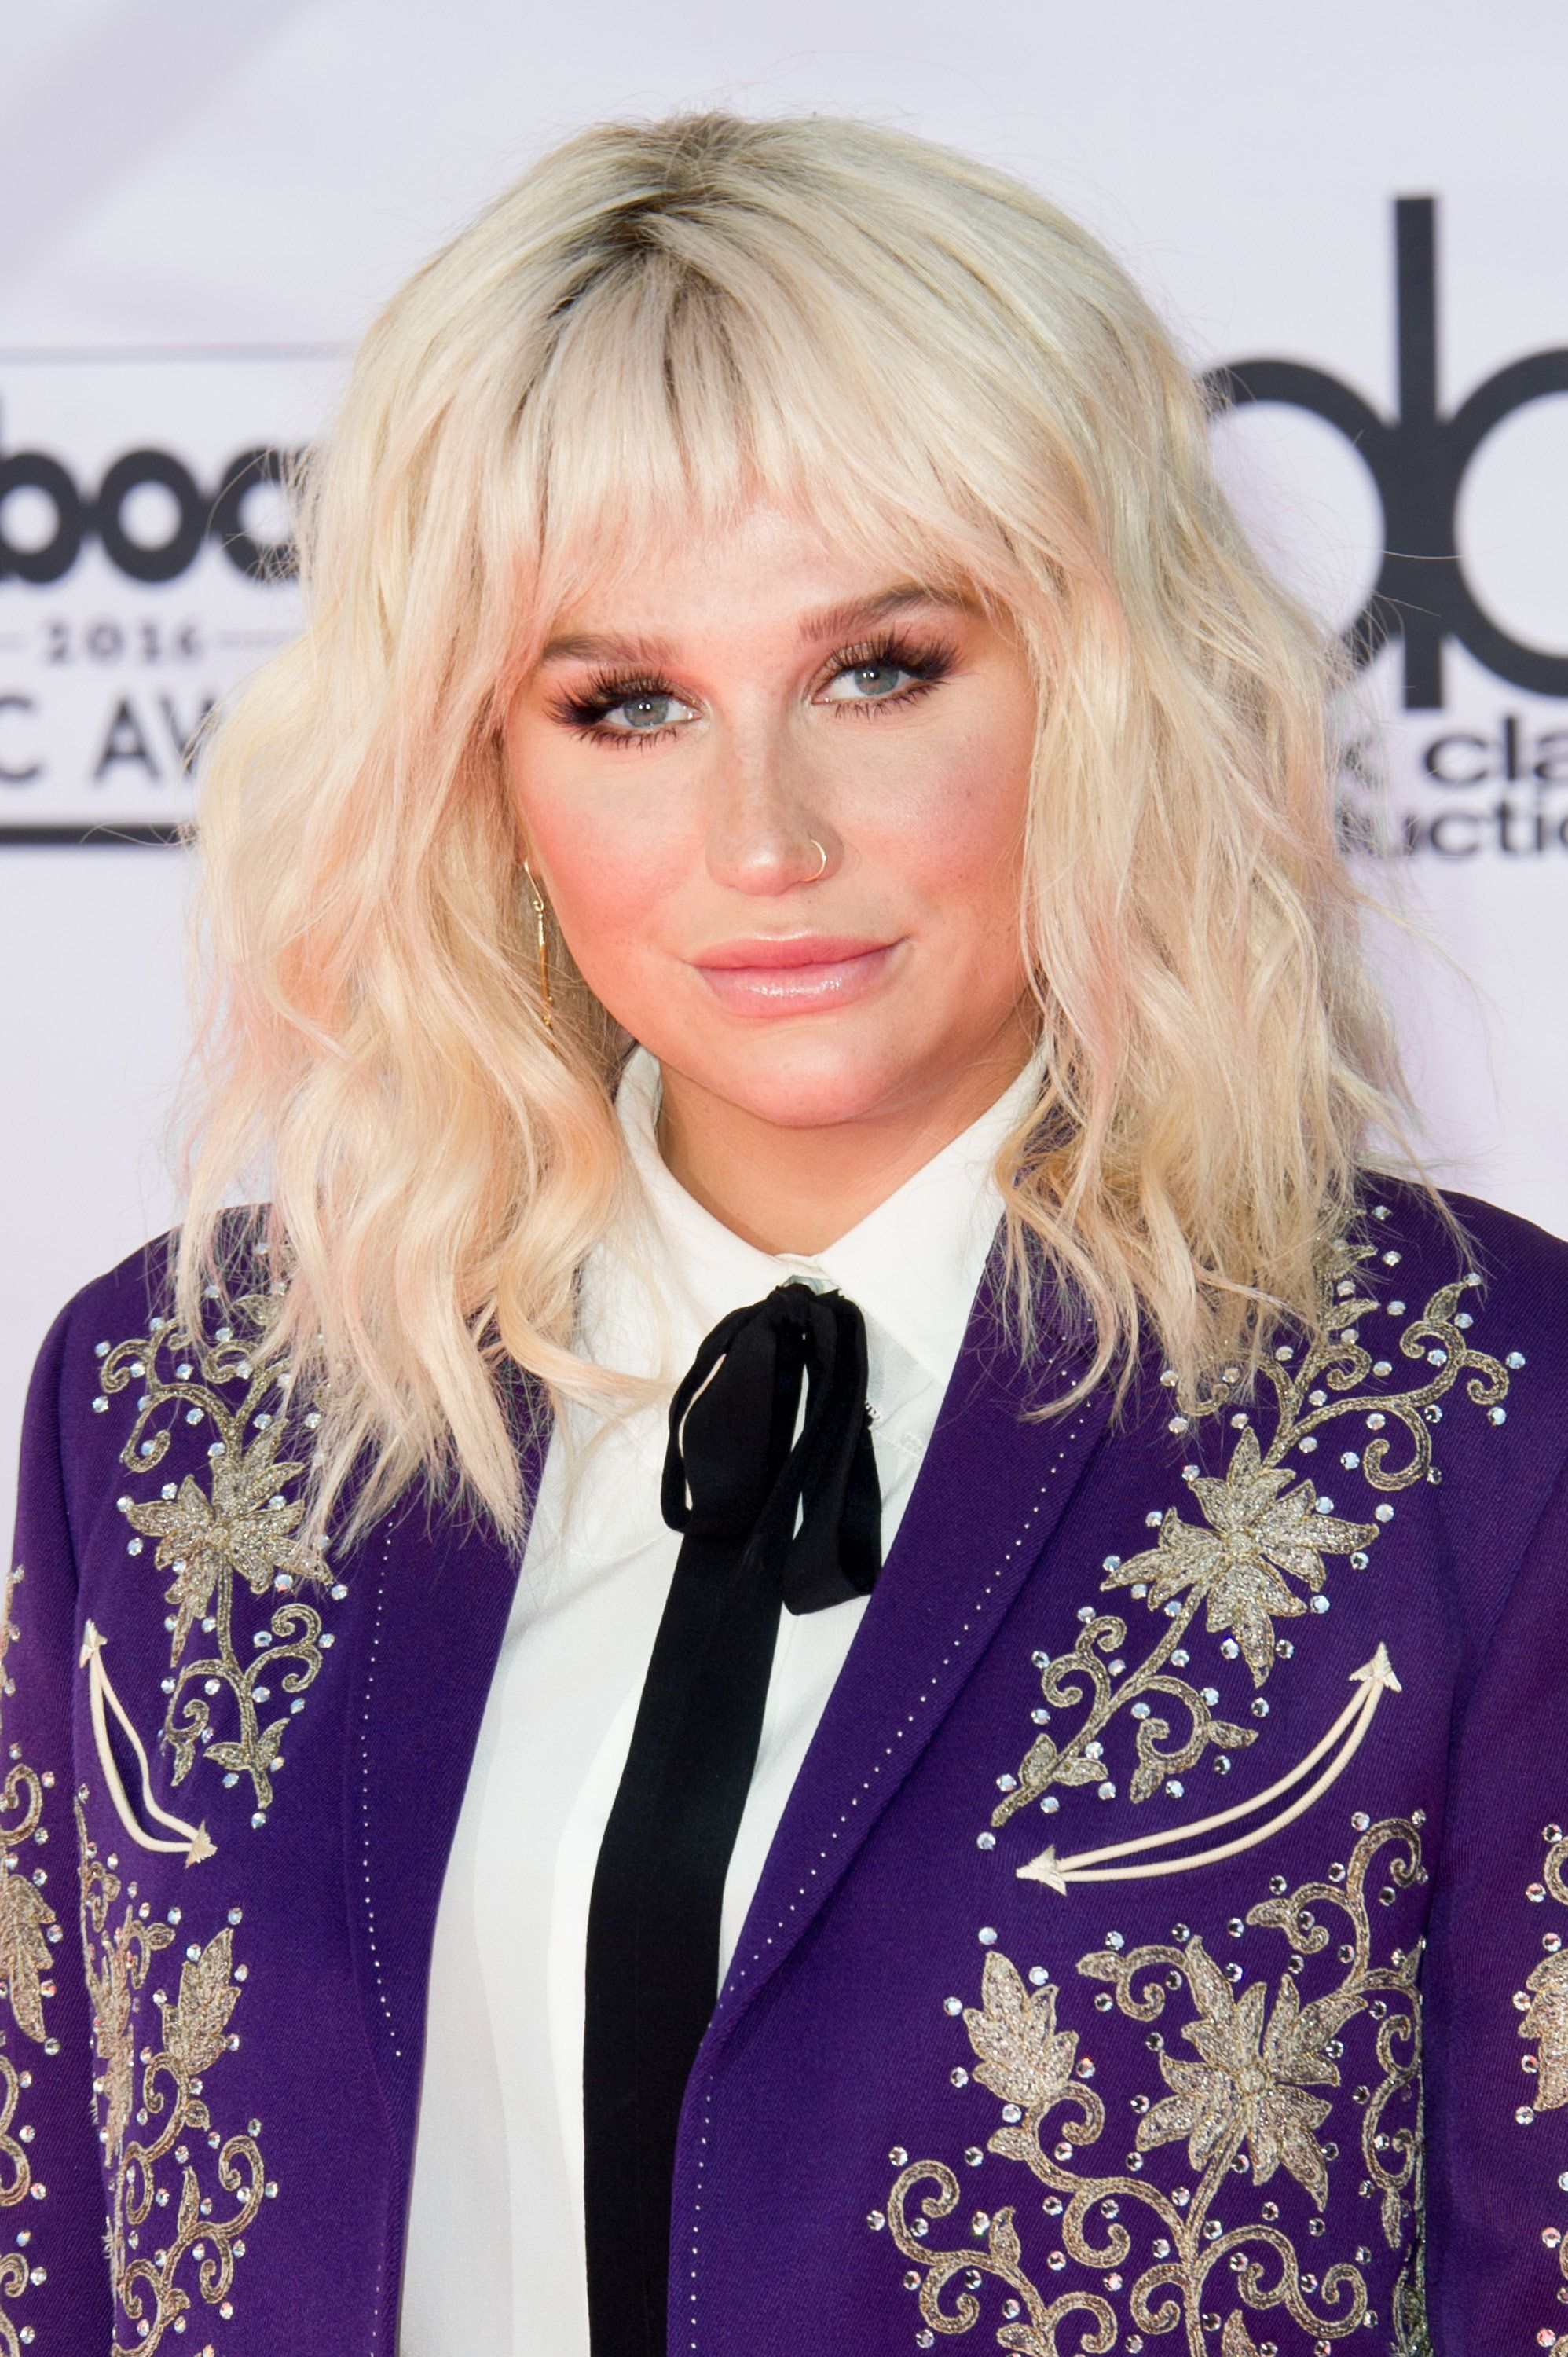 LAS VEGAS, NV - MAY 22:  Singer Kesha arrives at the 2016 Billboard Music Awards at T-Mobile Arena on May 22, 2016 in Las Vegas, Nevada.  (Photo by Allen Berezovsky/Getty Images)